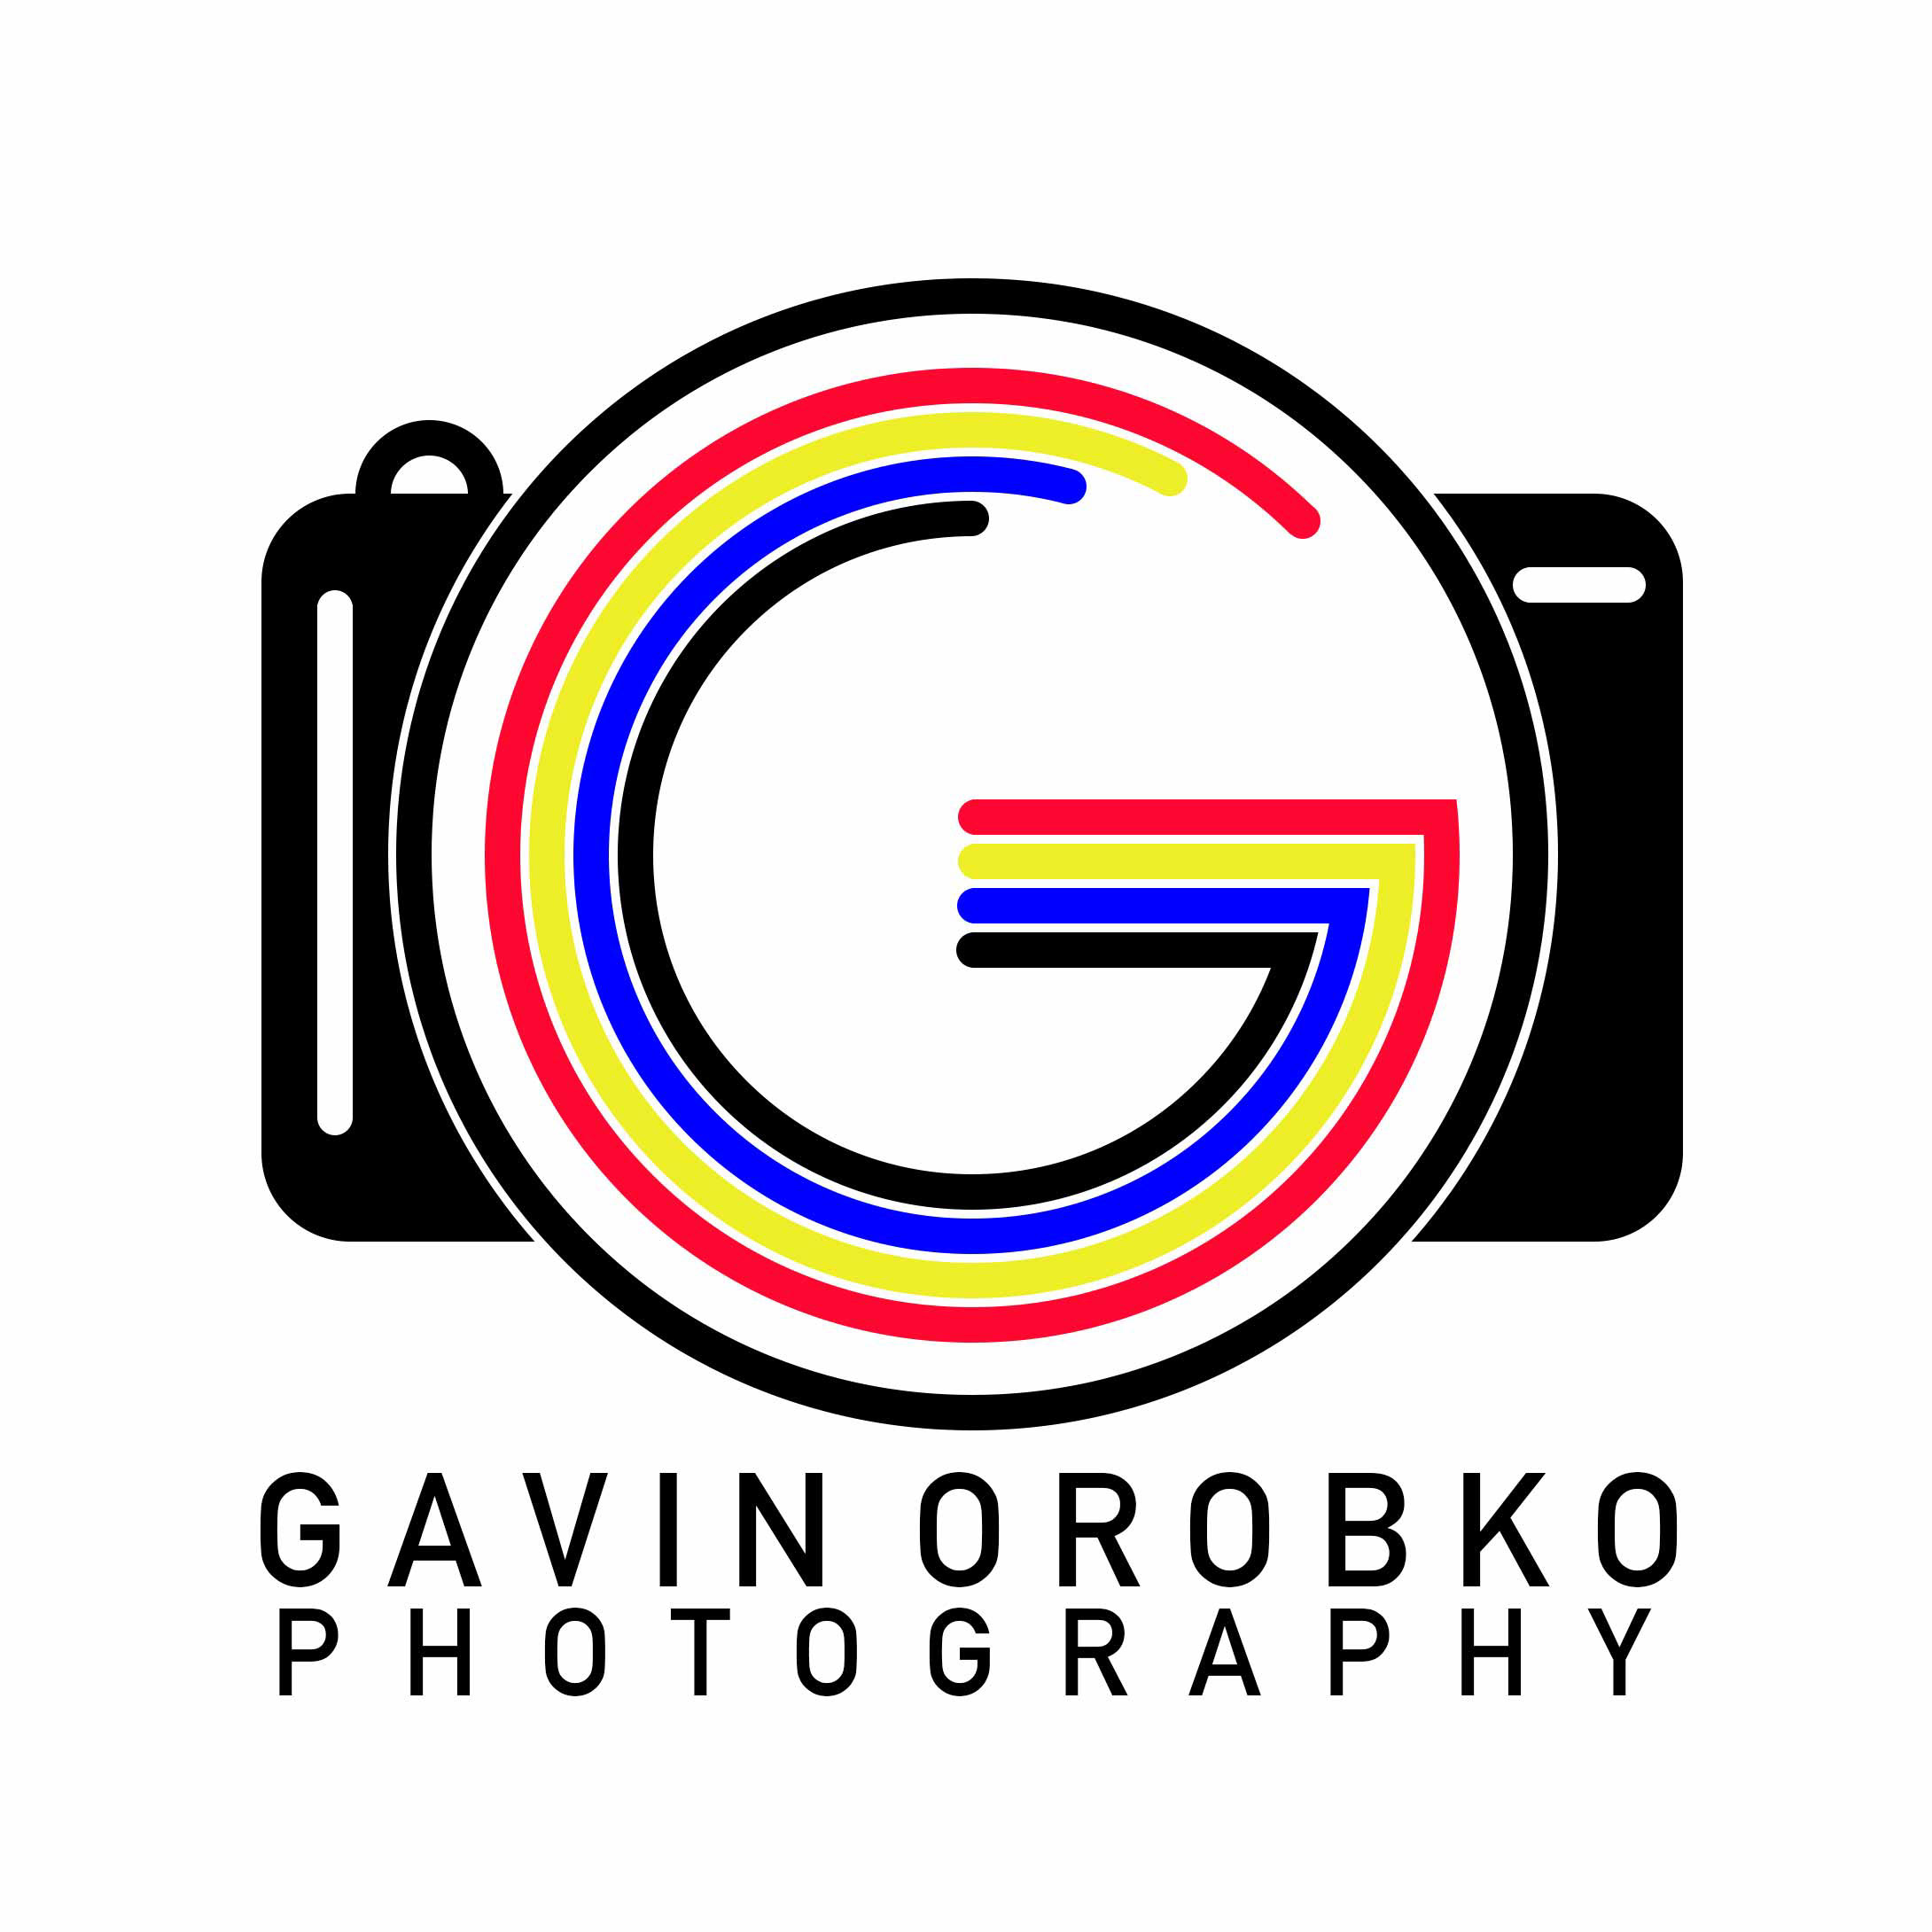 Gavin Orobko Photography